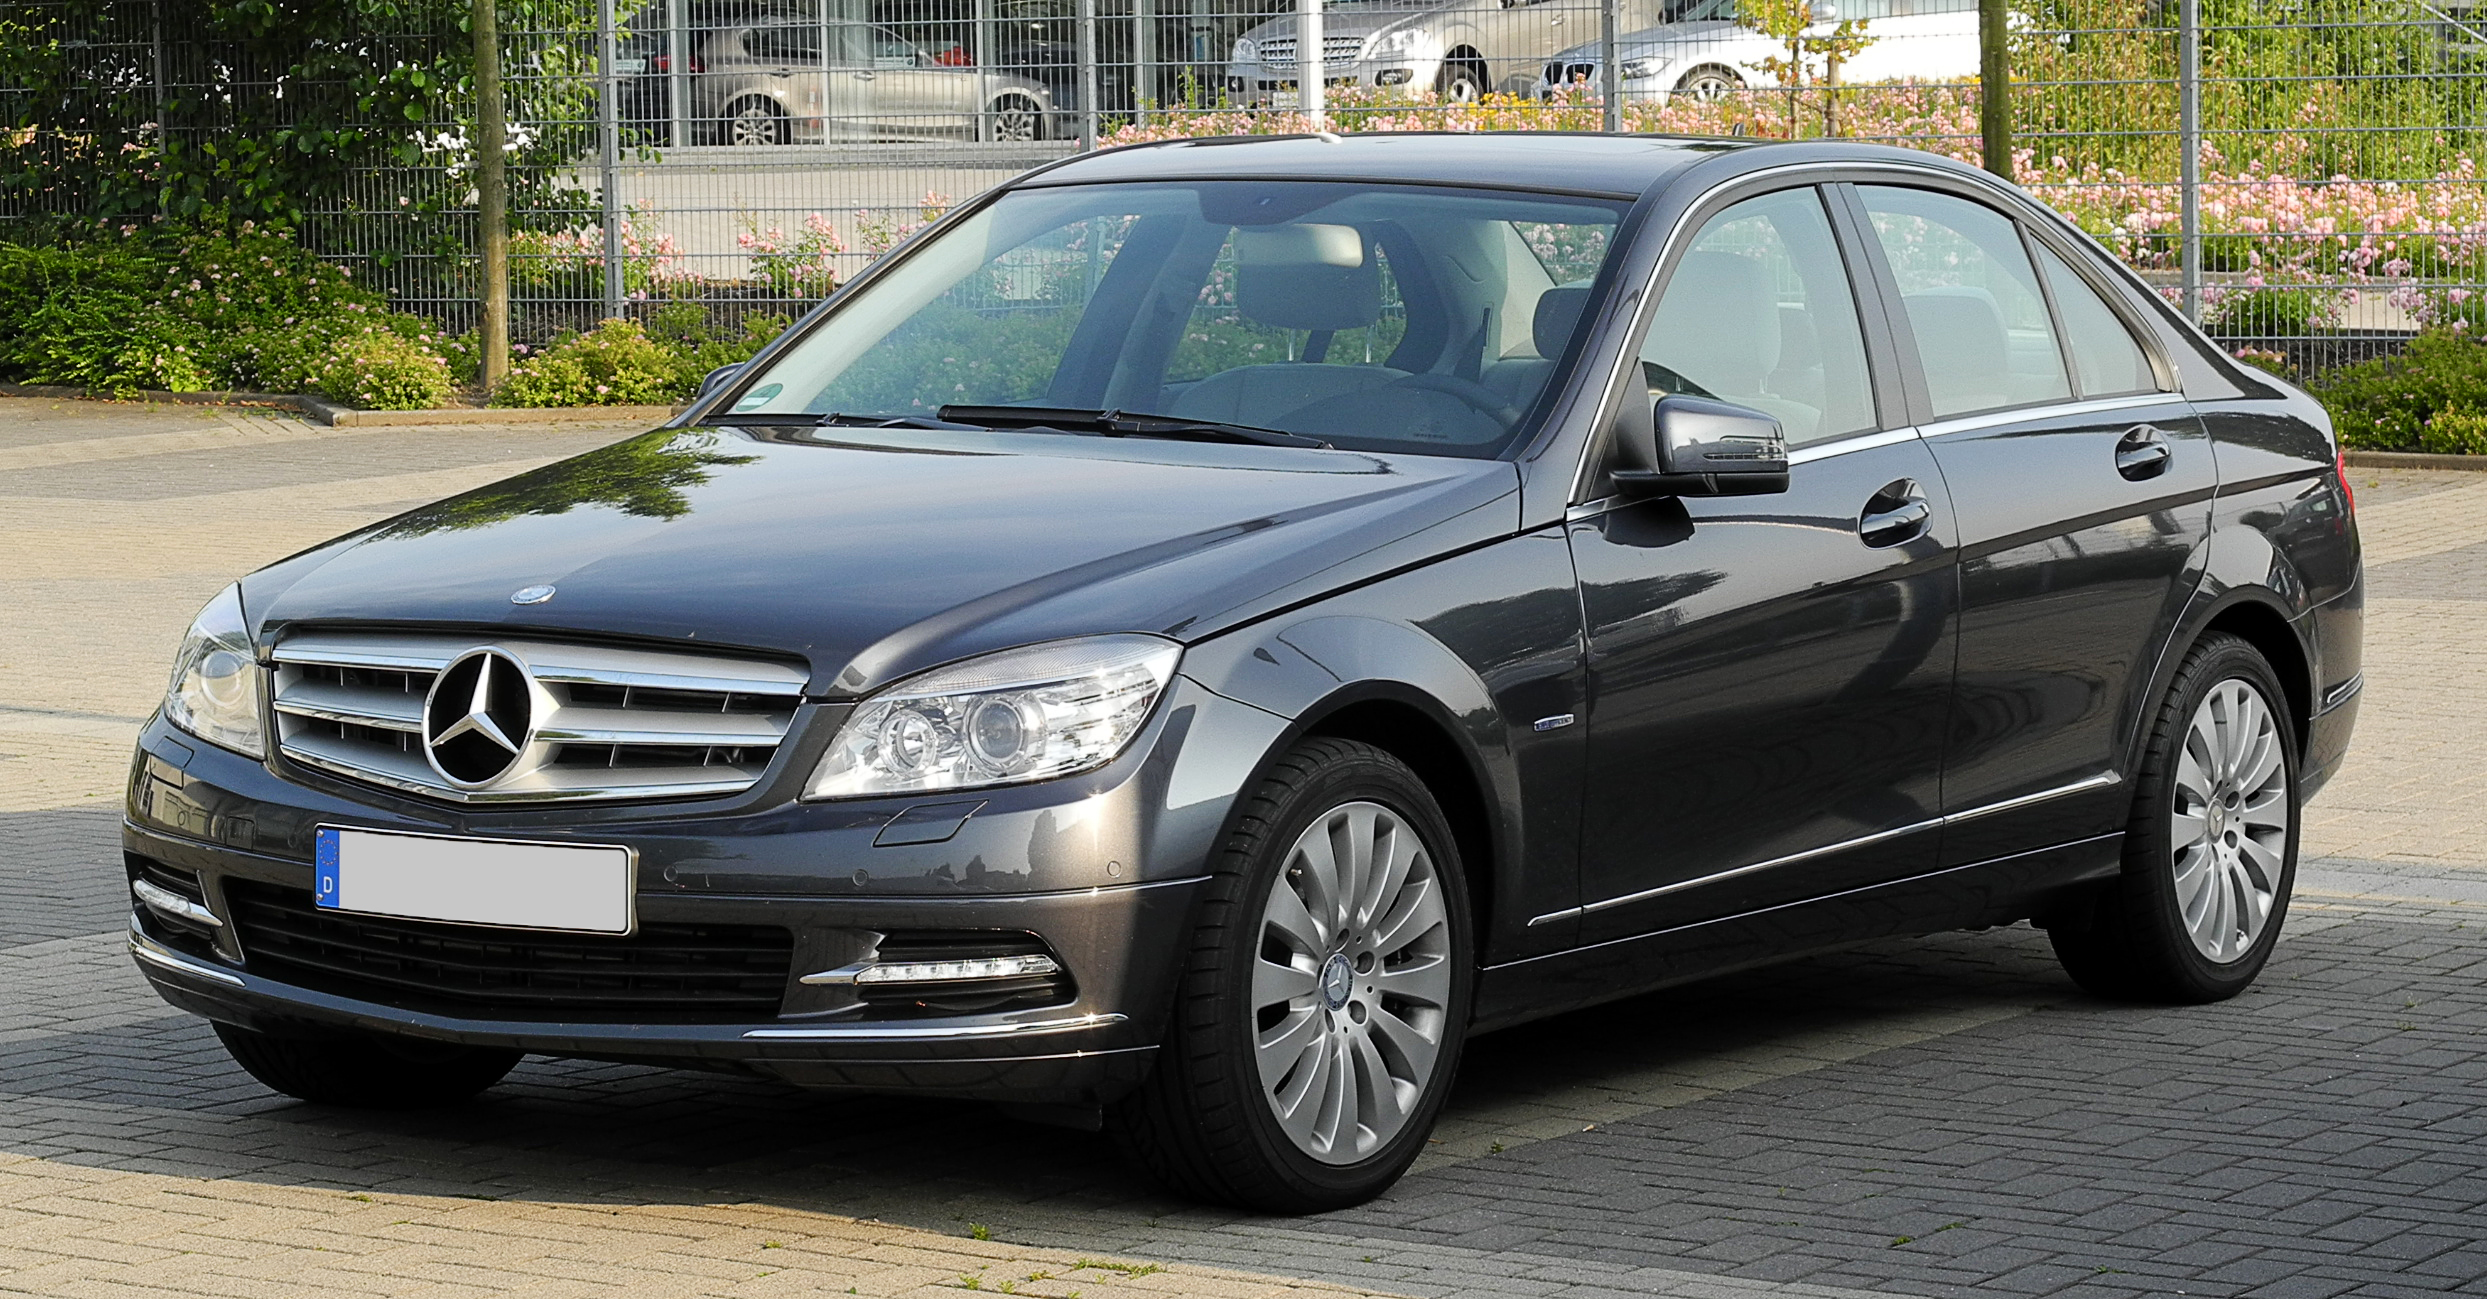 mercedes-benz c 350 cdi blueefficiency-pic. 3